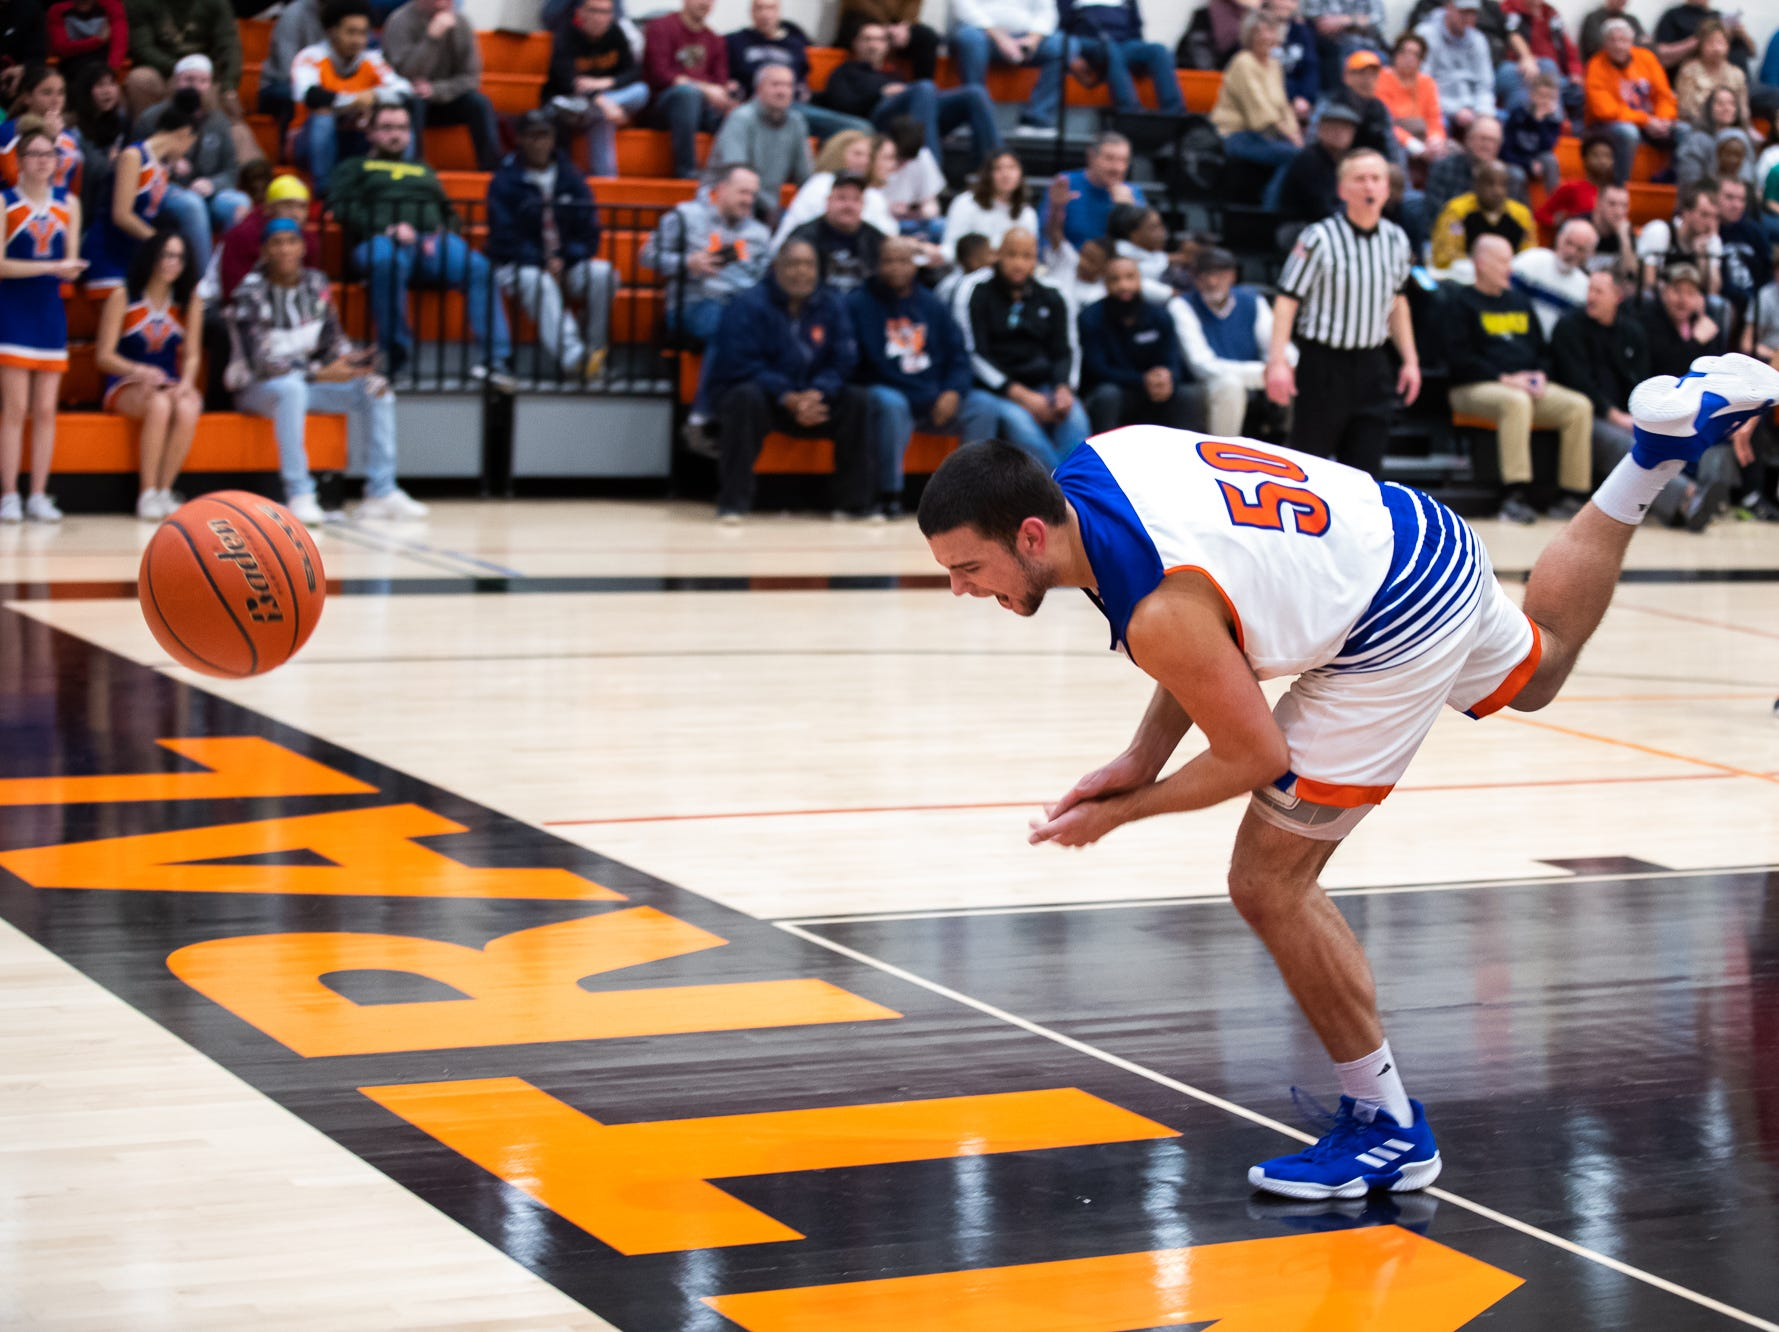 York High's Seth Bernstein (50) goes out of bounds during the second half of a YAIAA quarterfinal between York High and Dover, Saturday, Feb. 9, 2019, at Central York High School. The York High Bearcats defeated the Dover Eagles 75-53.